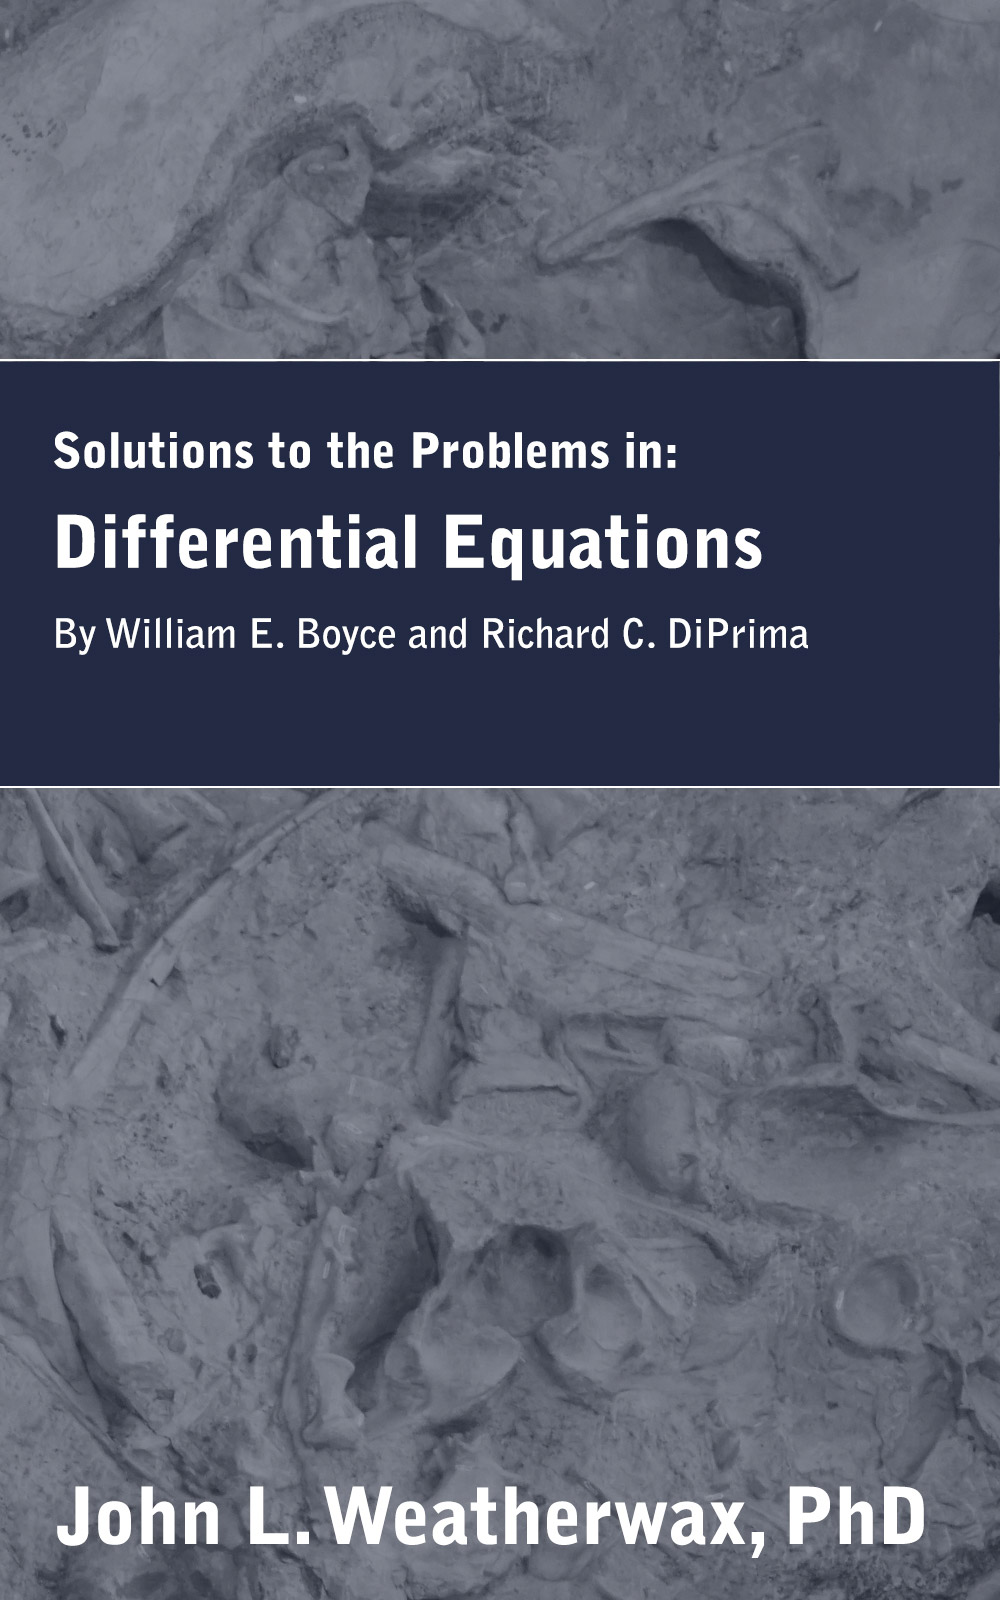 Solutions and Notes for: Differential Equations by William Boyce and Richard DiPrima